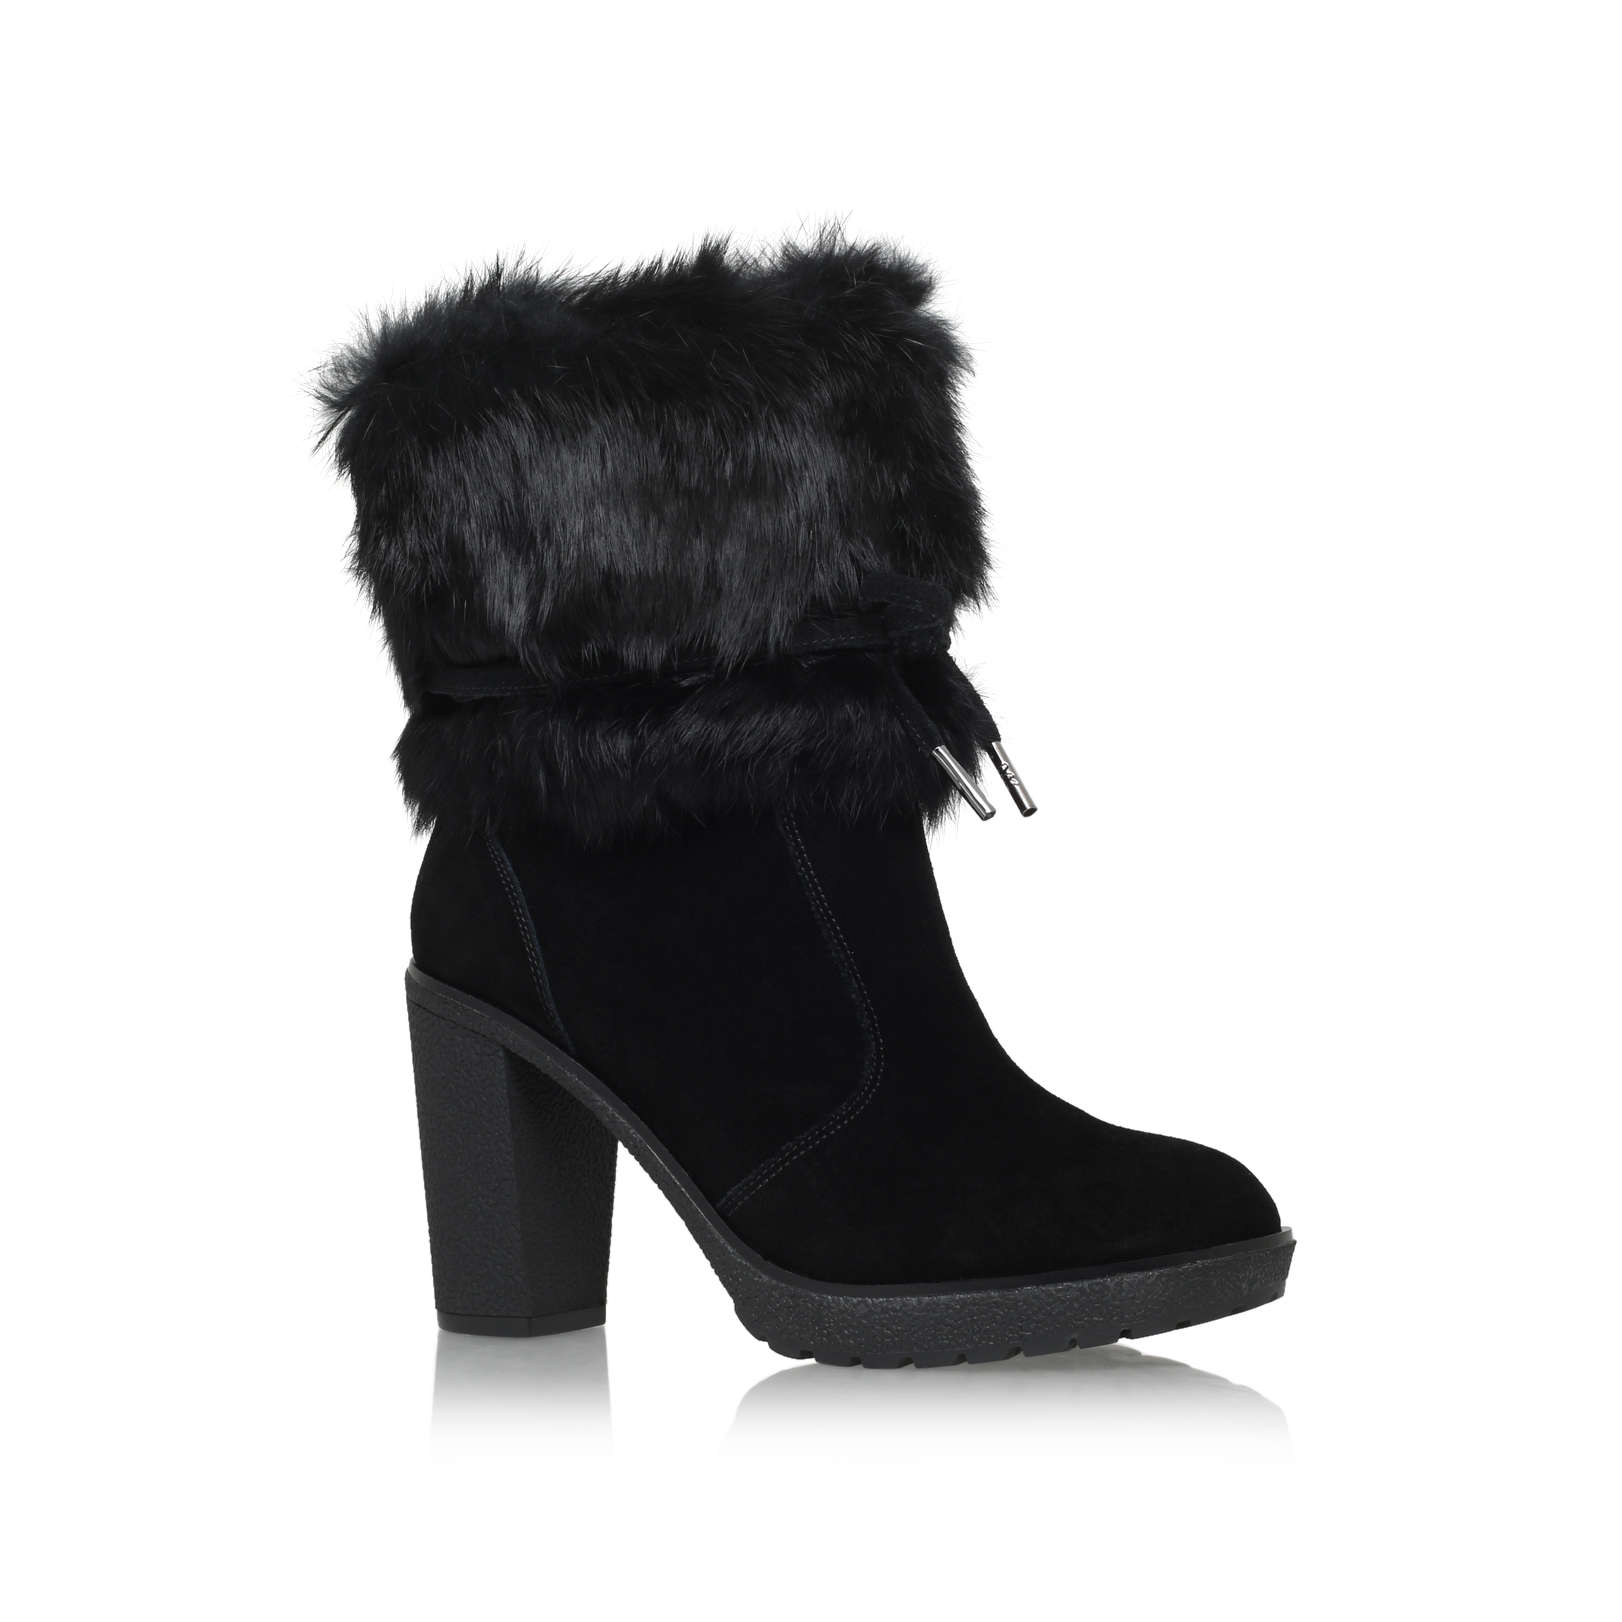 HAWTHORNE ANKLE BOOT